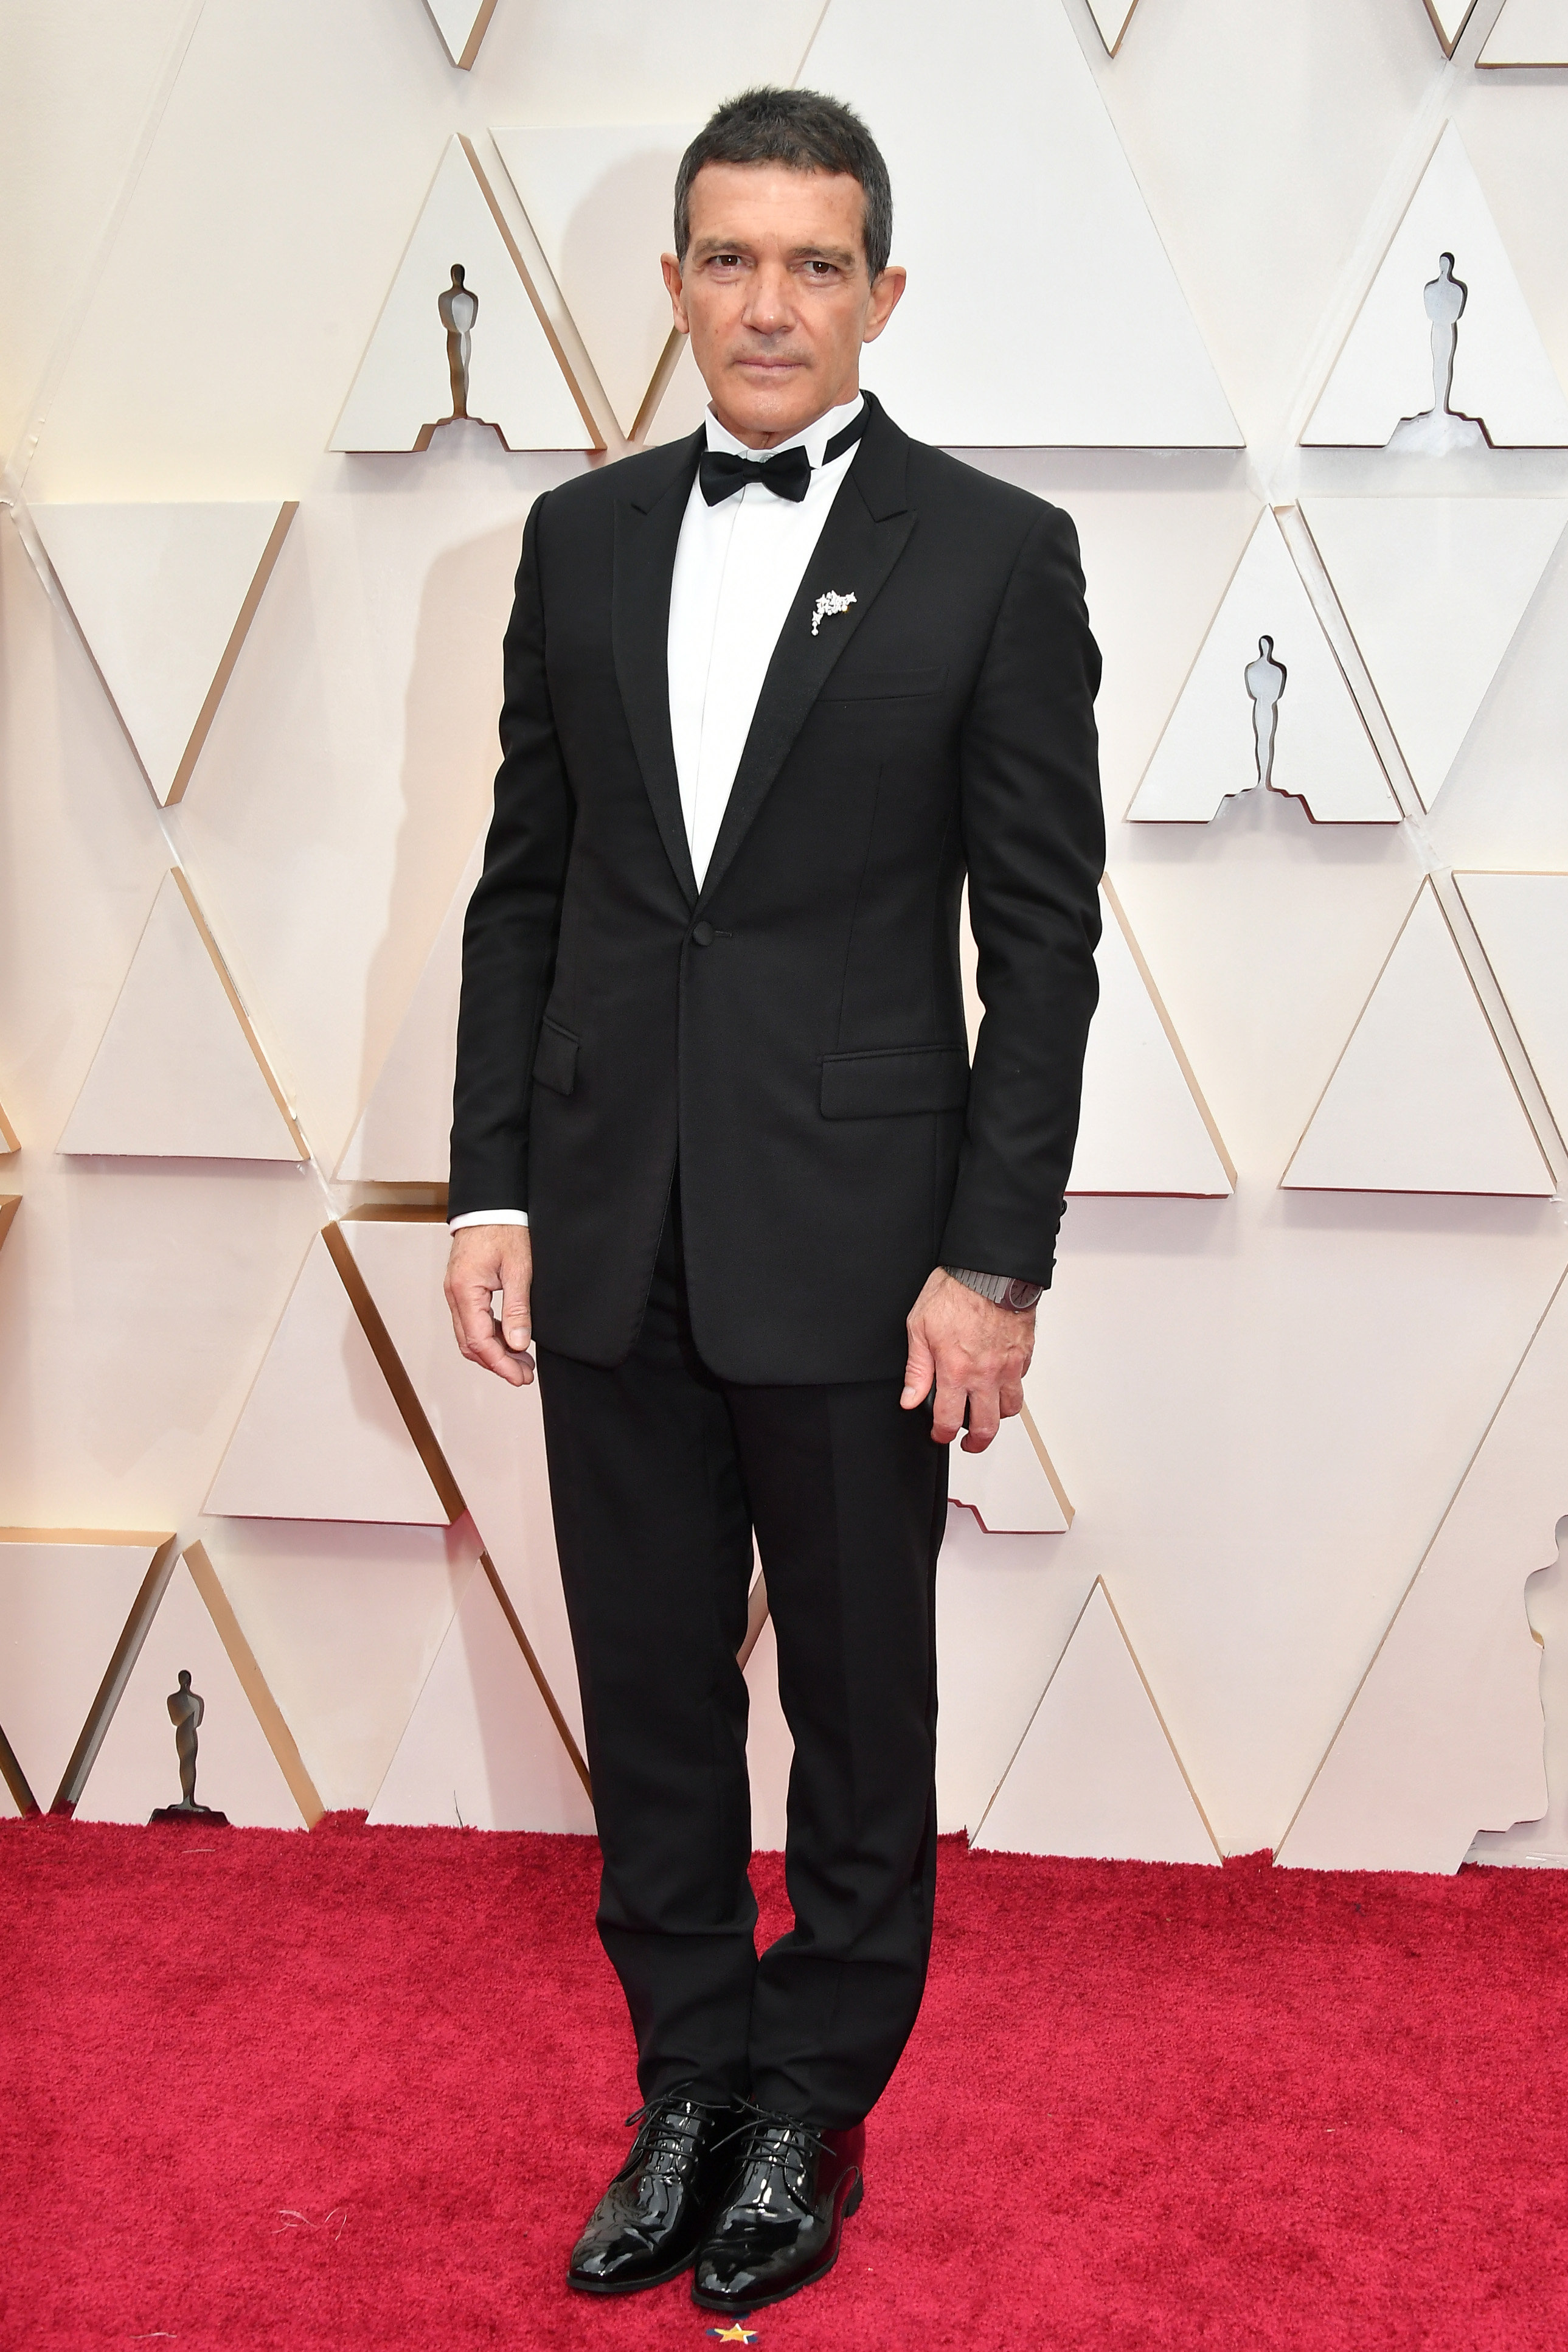 HOLLYWOOD, CALIFORNIA - FEBRUARY 09: Antonio Banderas attends the 92nd Annual Academy Awards at Hollywood and Highland on February 09, 2020 in Hollywood, California. (Photo by Amy Sussman/Getty Images)